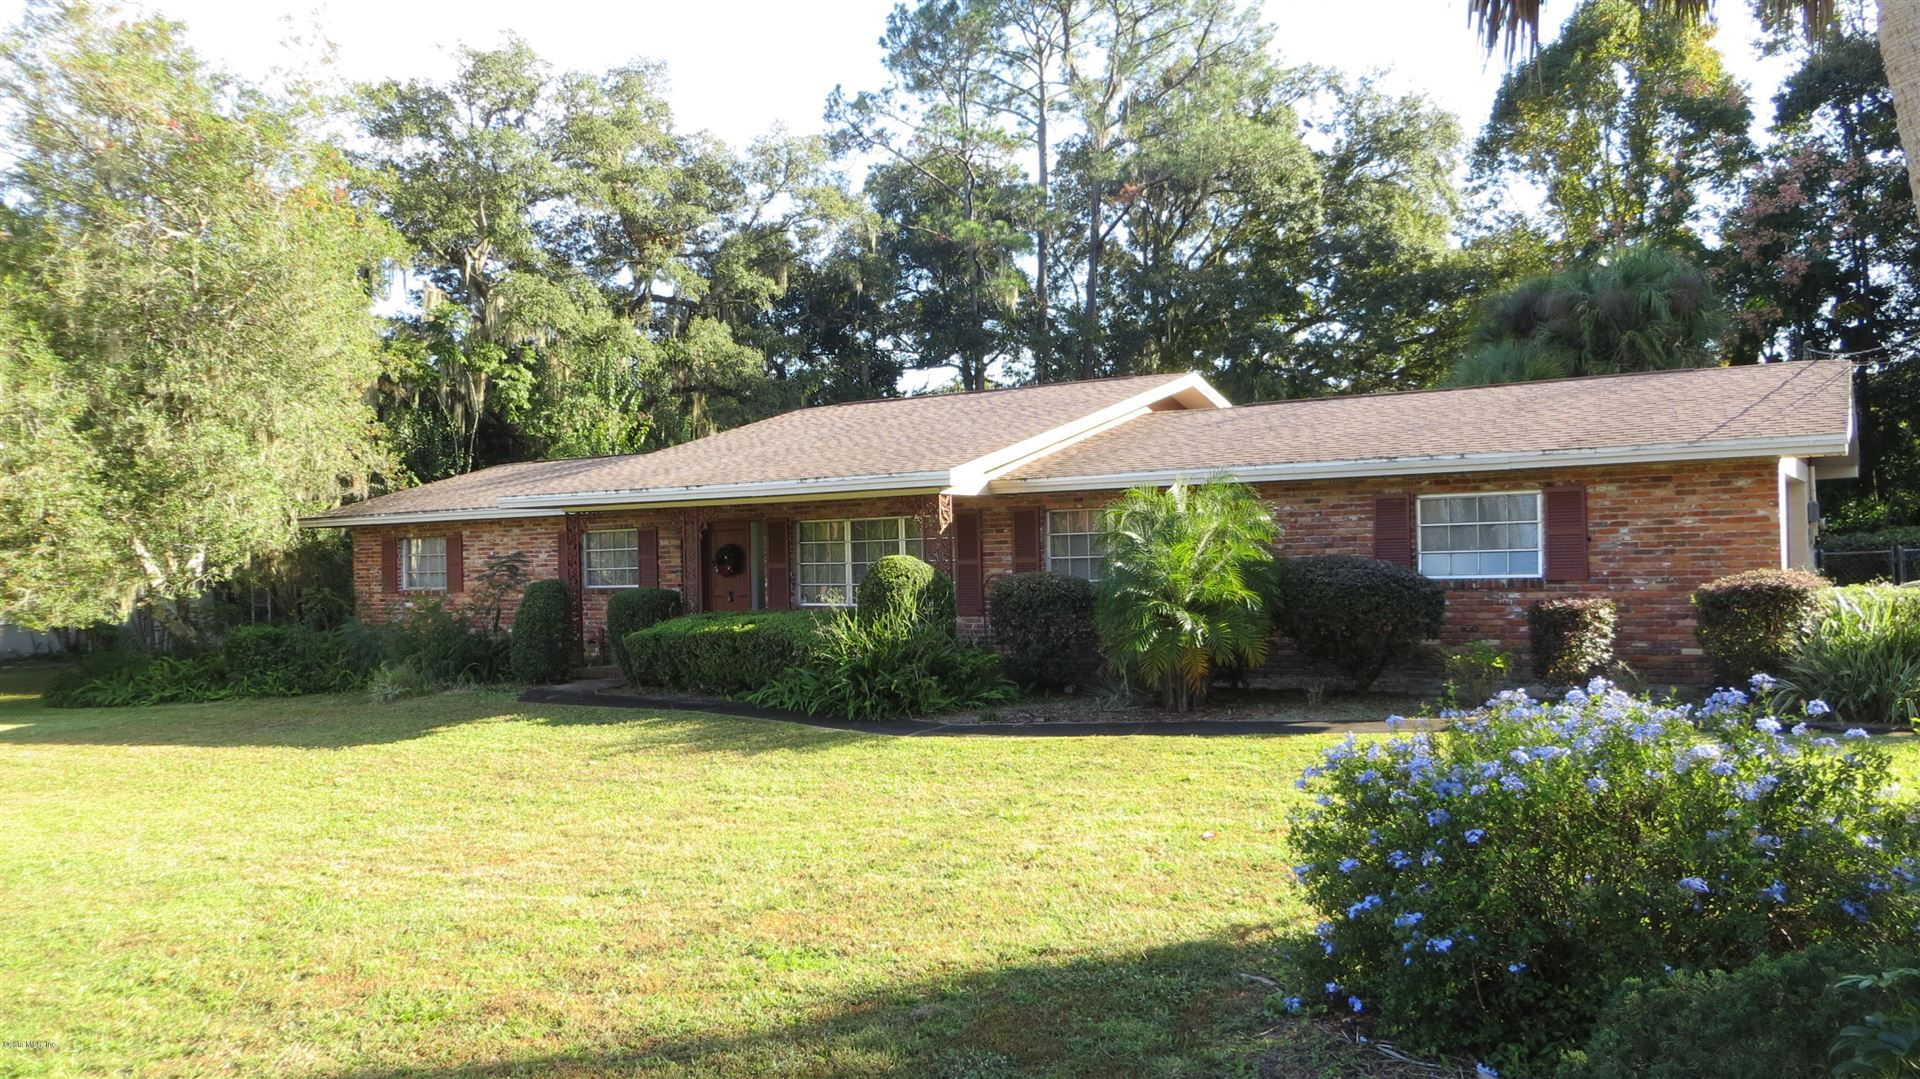 2108 SE 2nd Place, Ocala, FL 34471 - MLS#: 566774